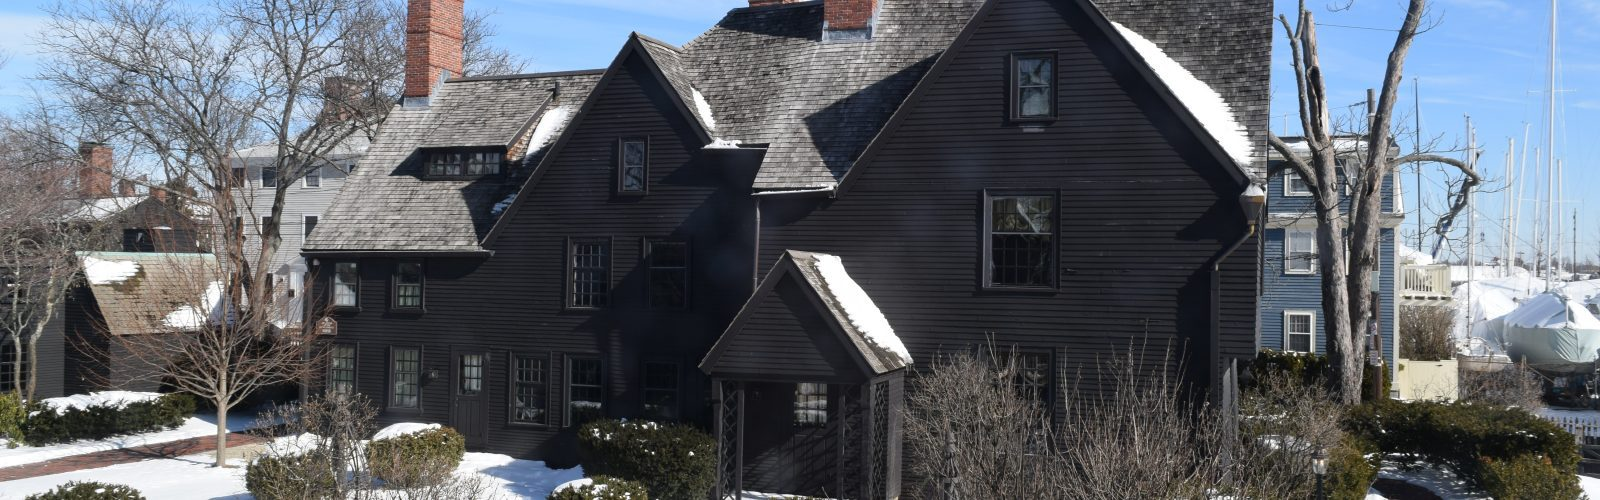 Winter image of The House of the Seven Gables